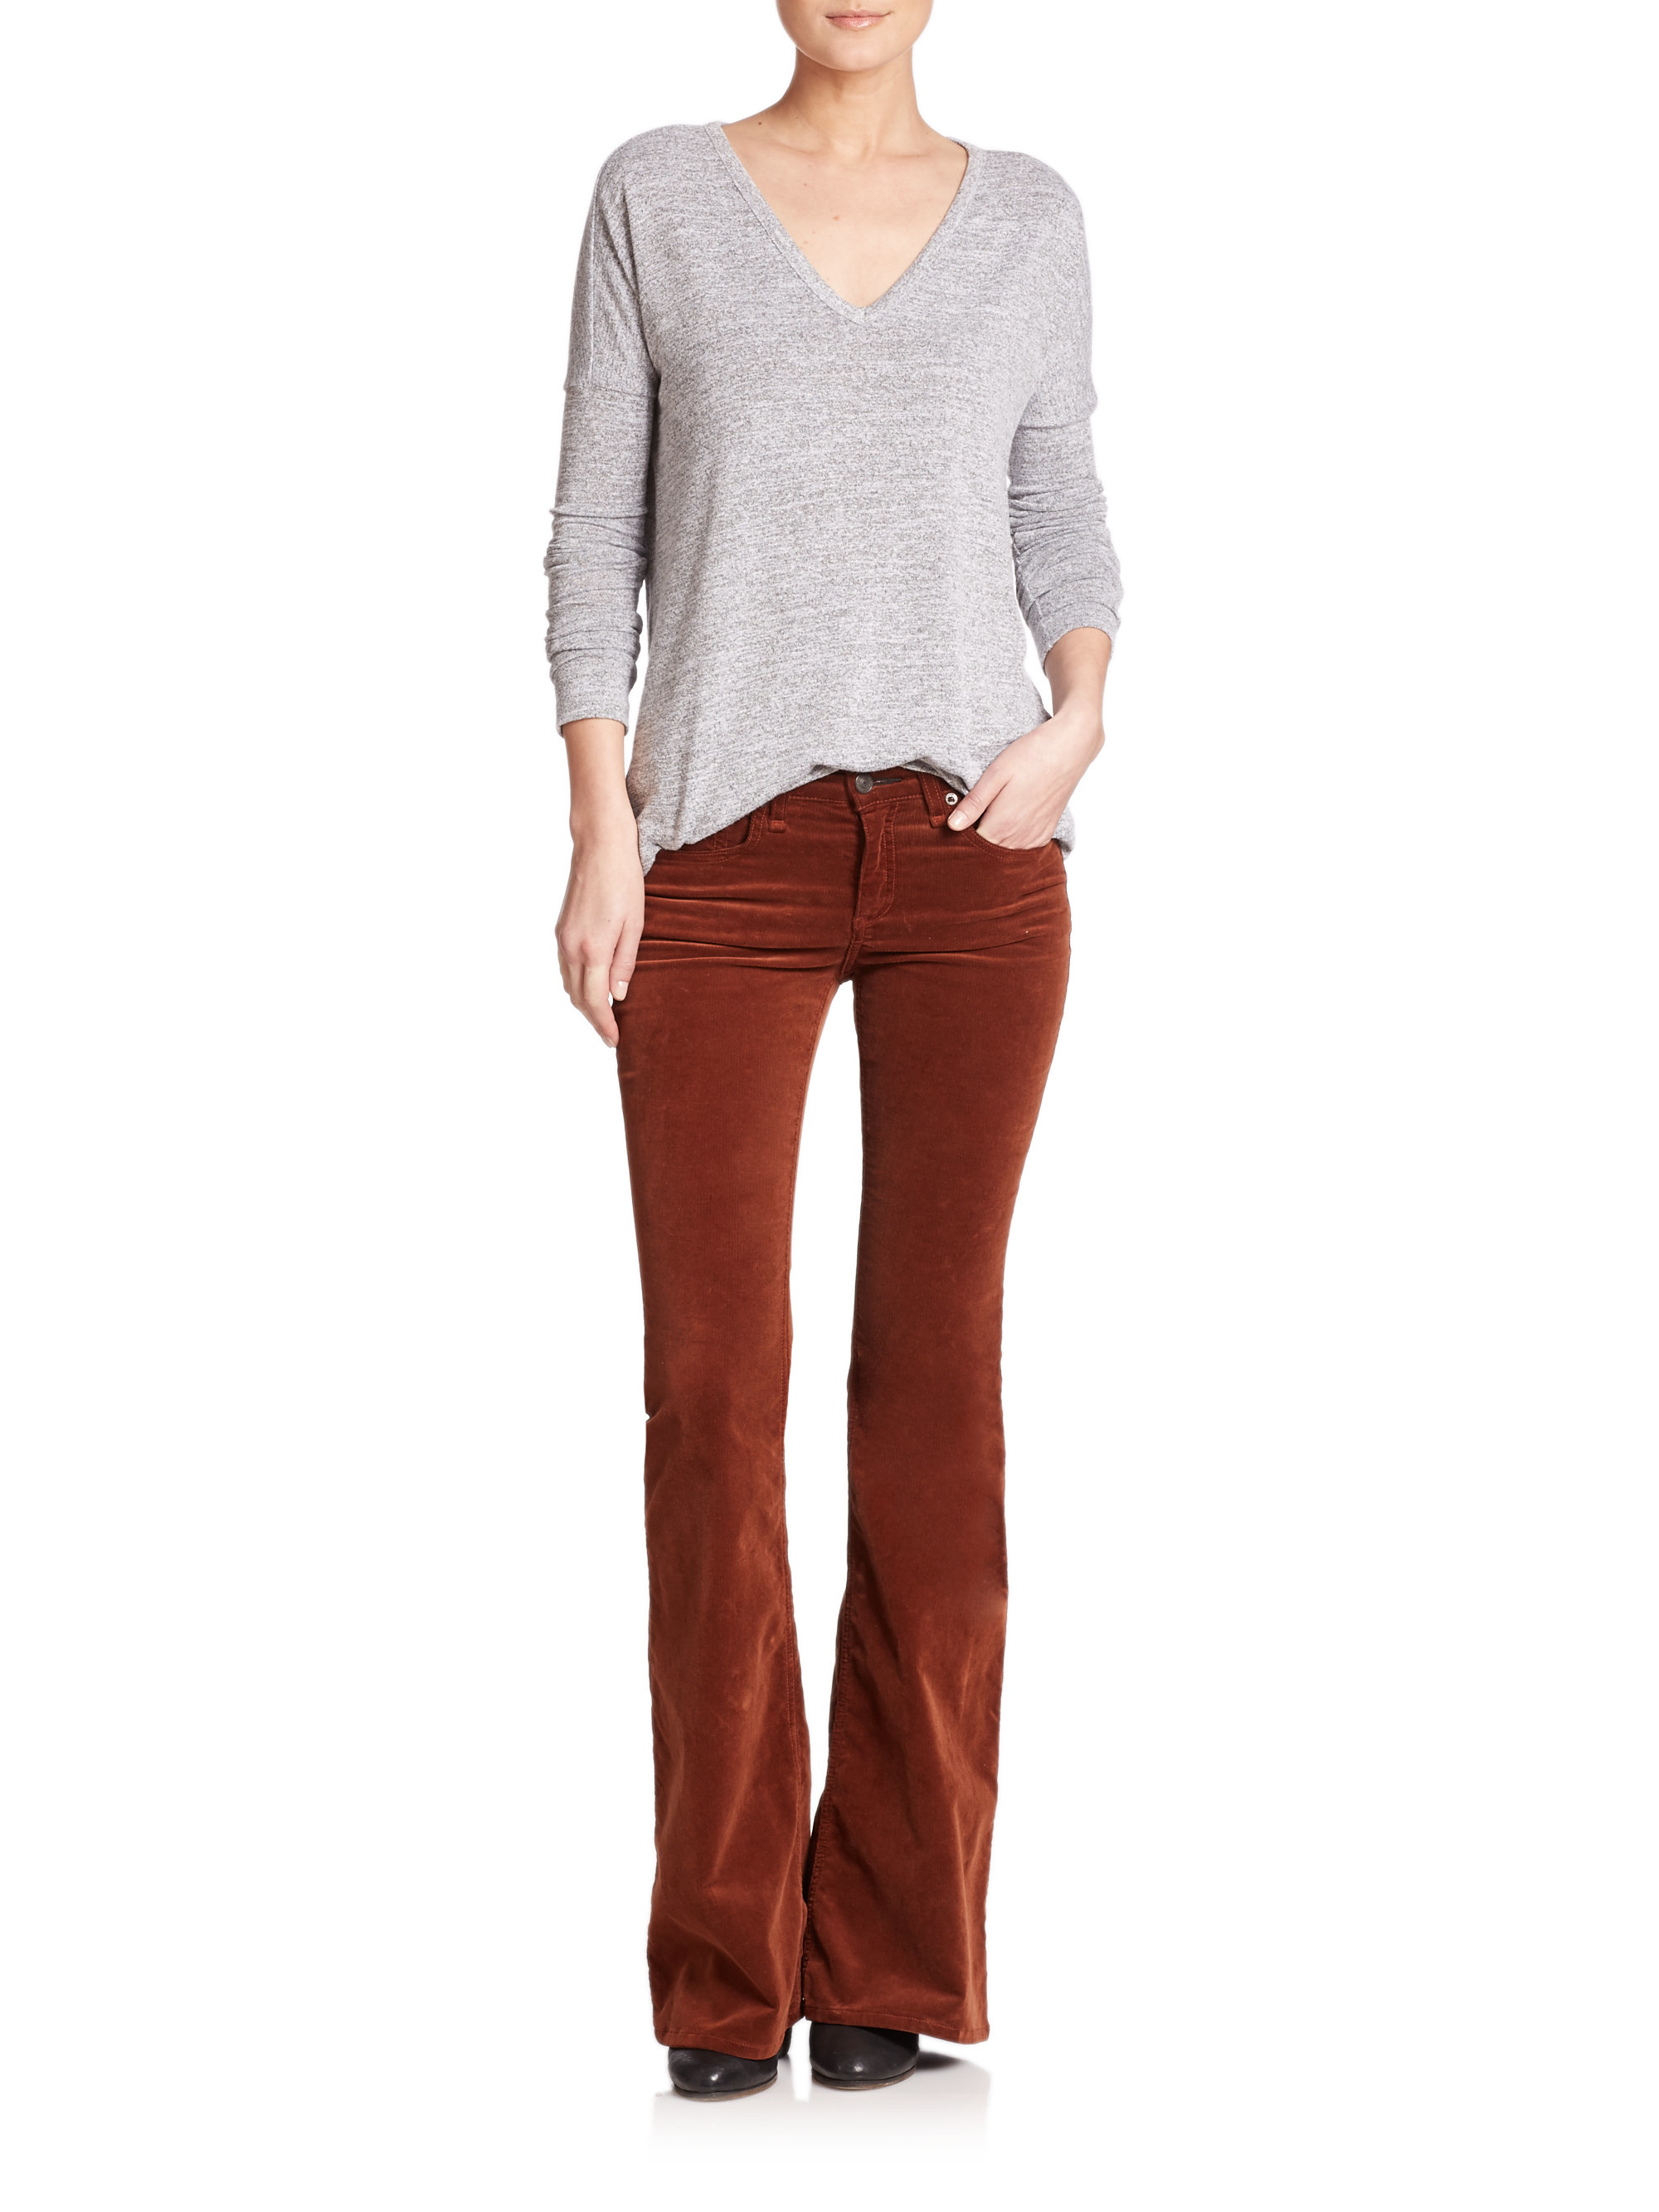 Rag & bone Mid-rise Stretch Corduroy Flared Jeans in Brown | Lyst